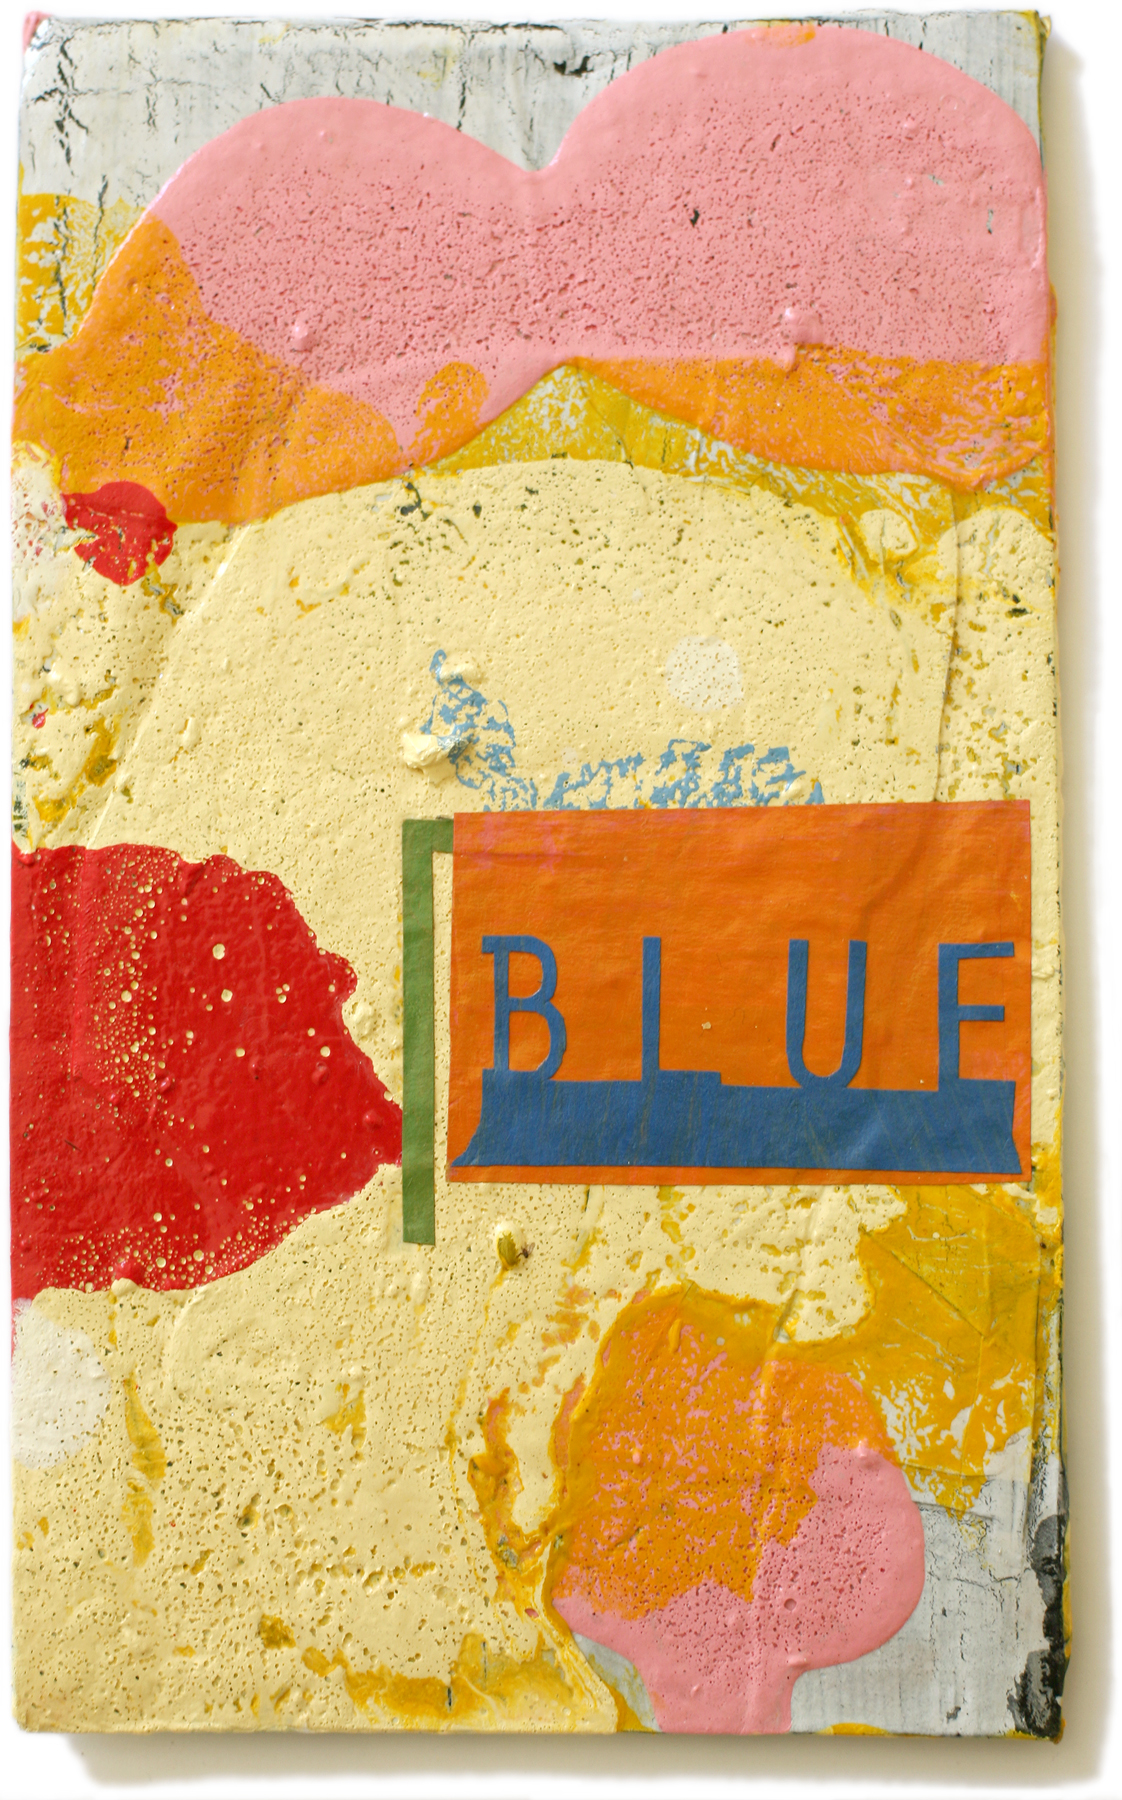 """Blue, 10"""" x 6"""", 2008-2010 (private collection)"""